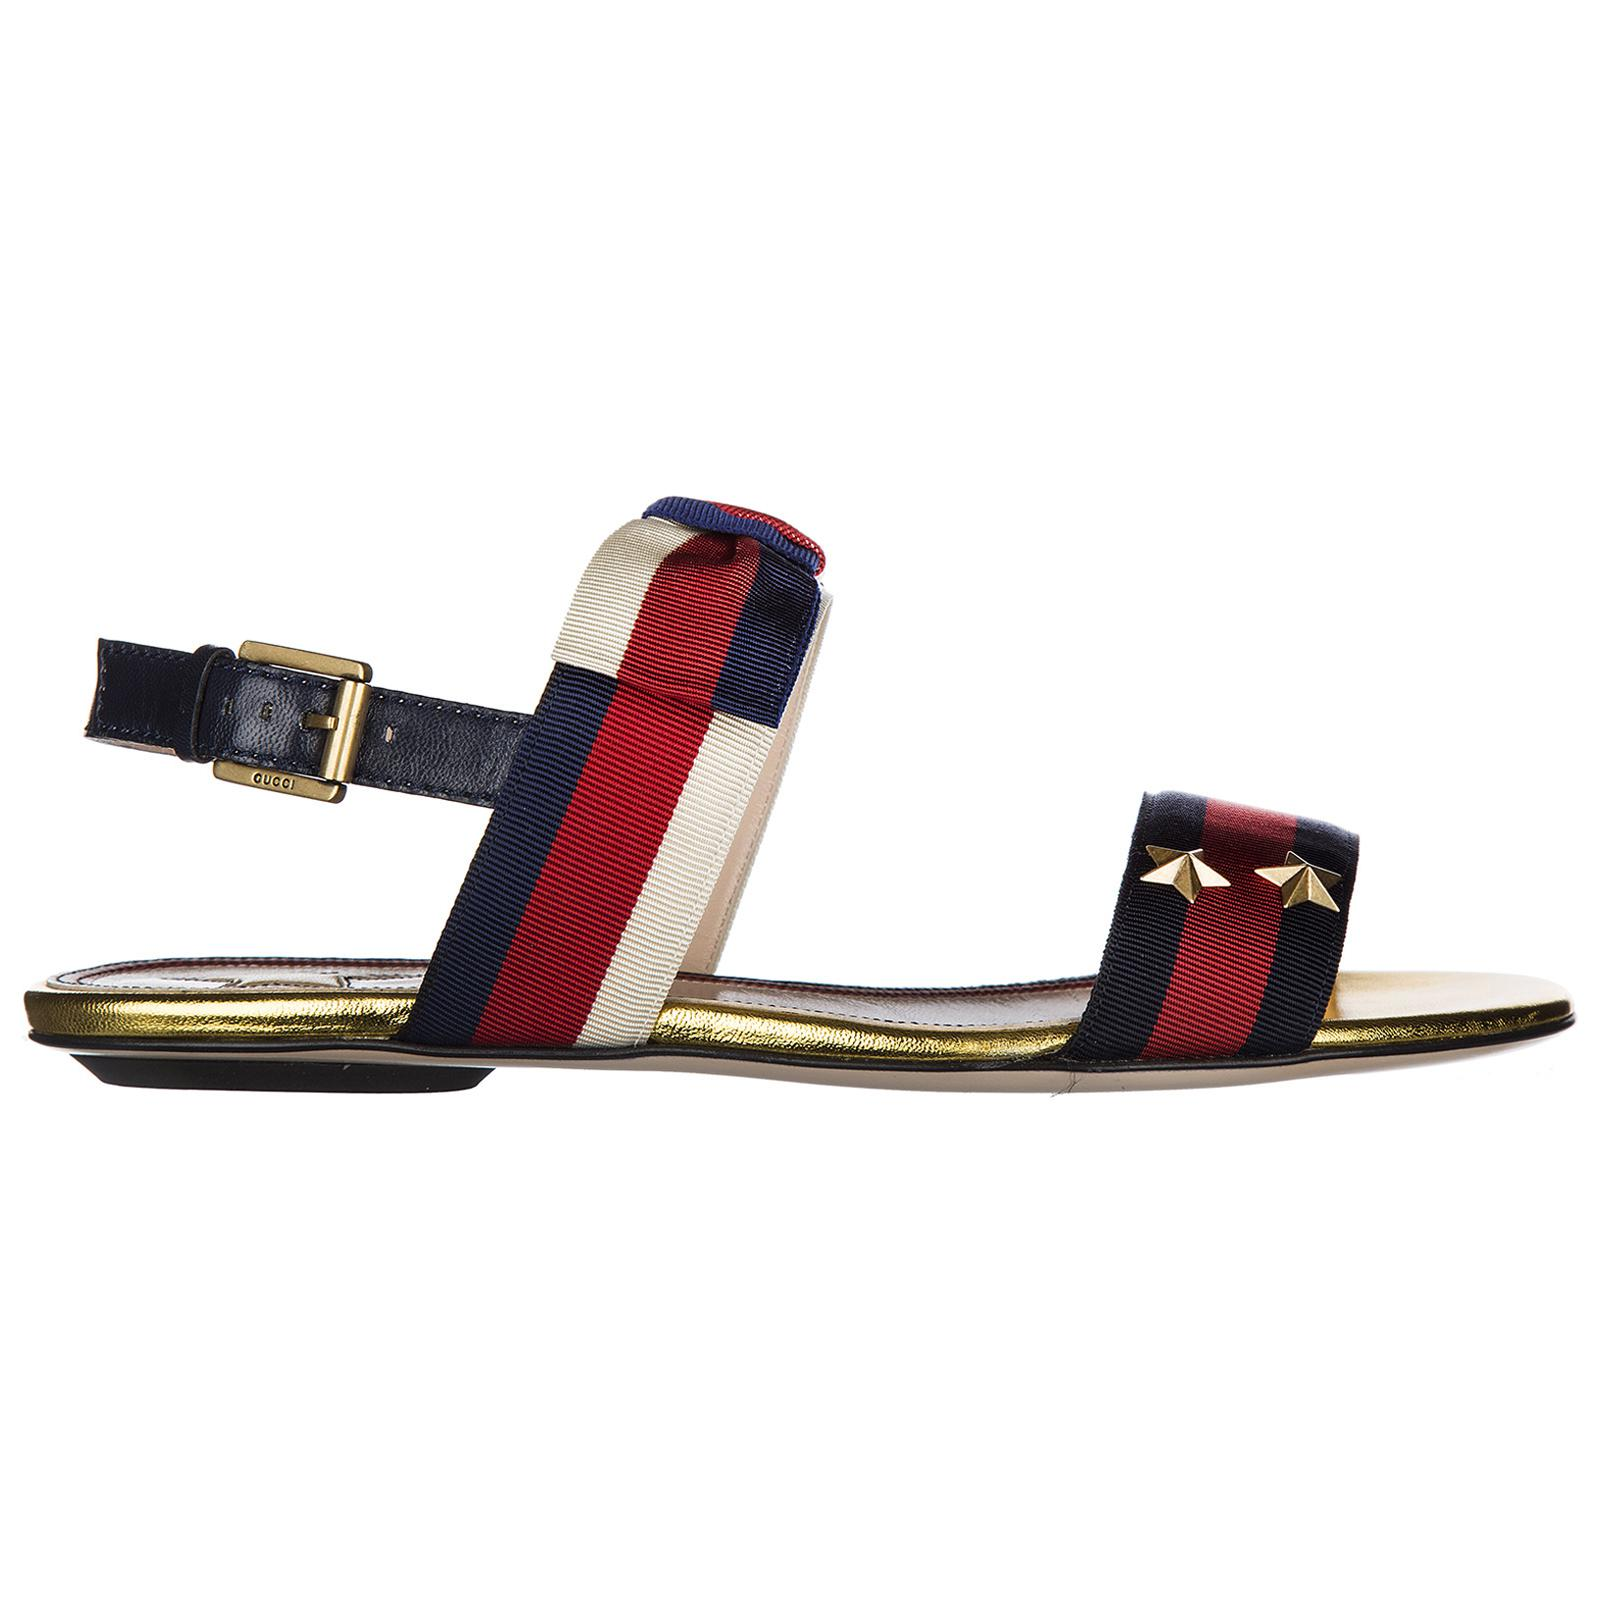 21102238638f Lyst - Gucci Leather Sandals Sylvie Web - Save 17.041800643086816%